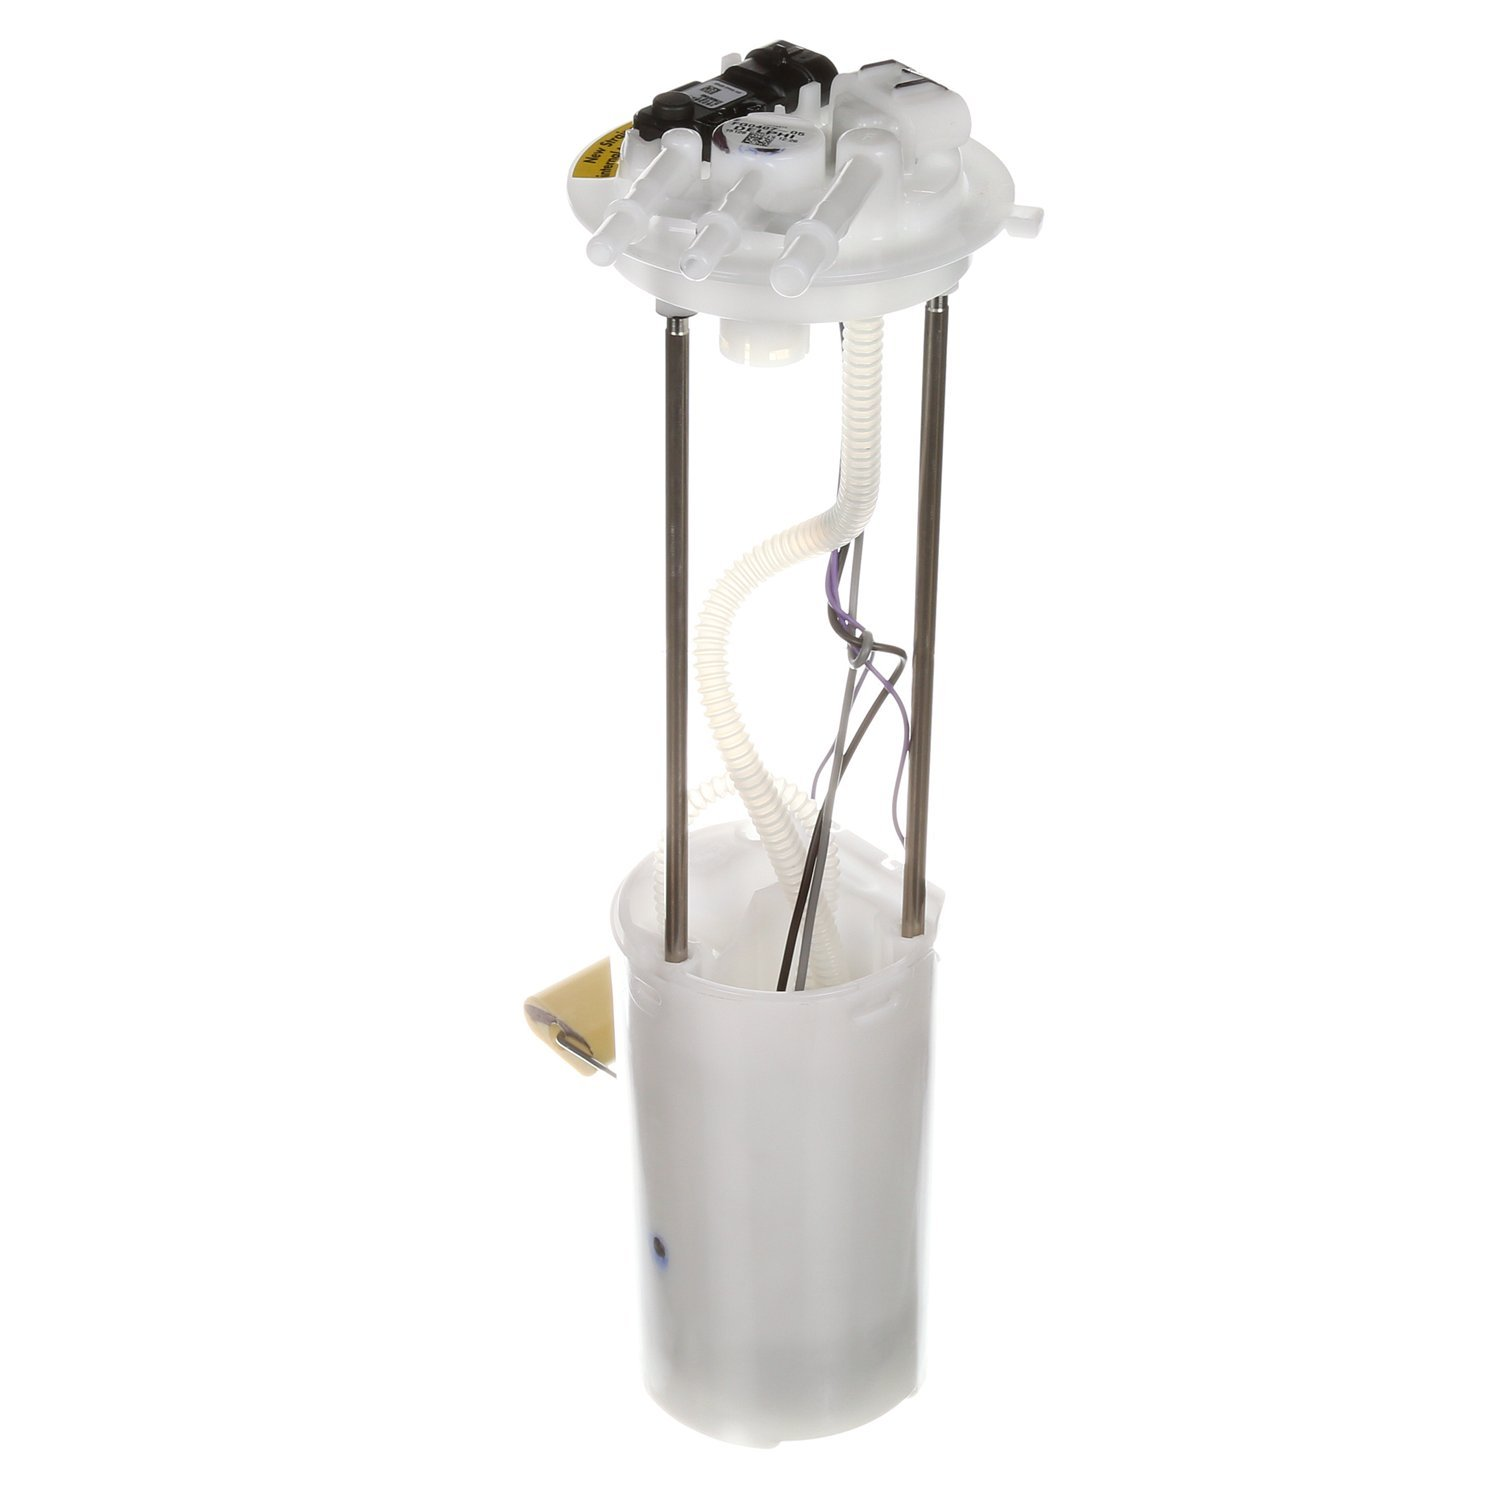 Delphi FG0407 Fuel Pump Module by Delphi